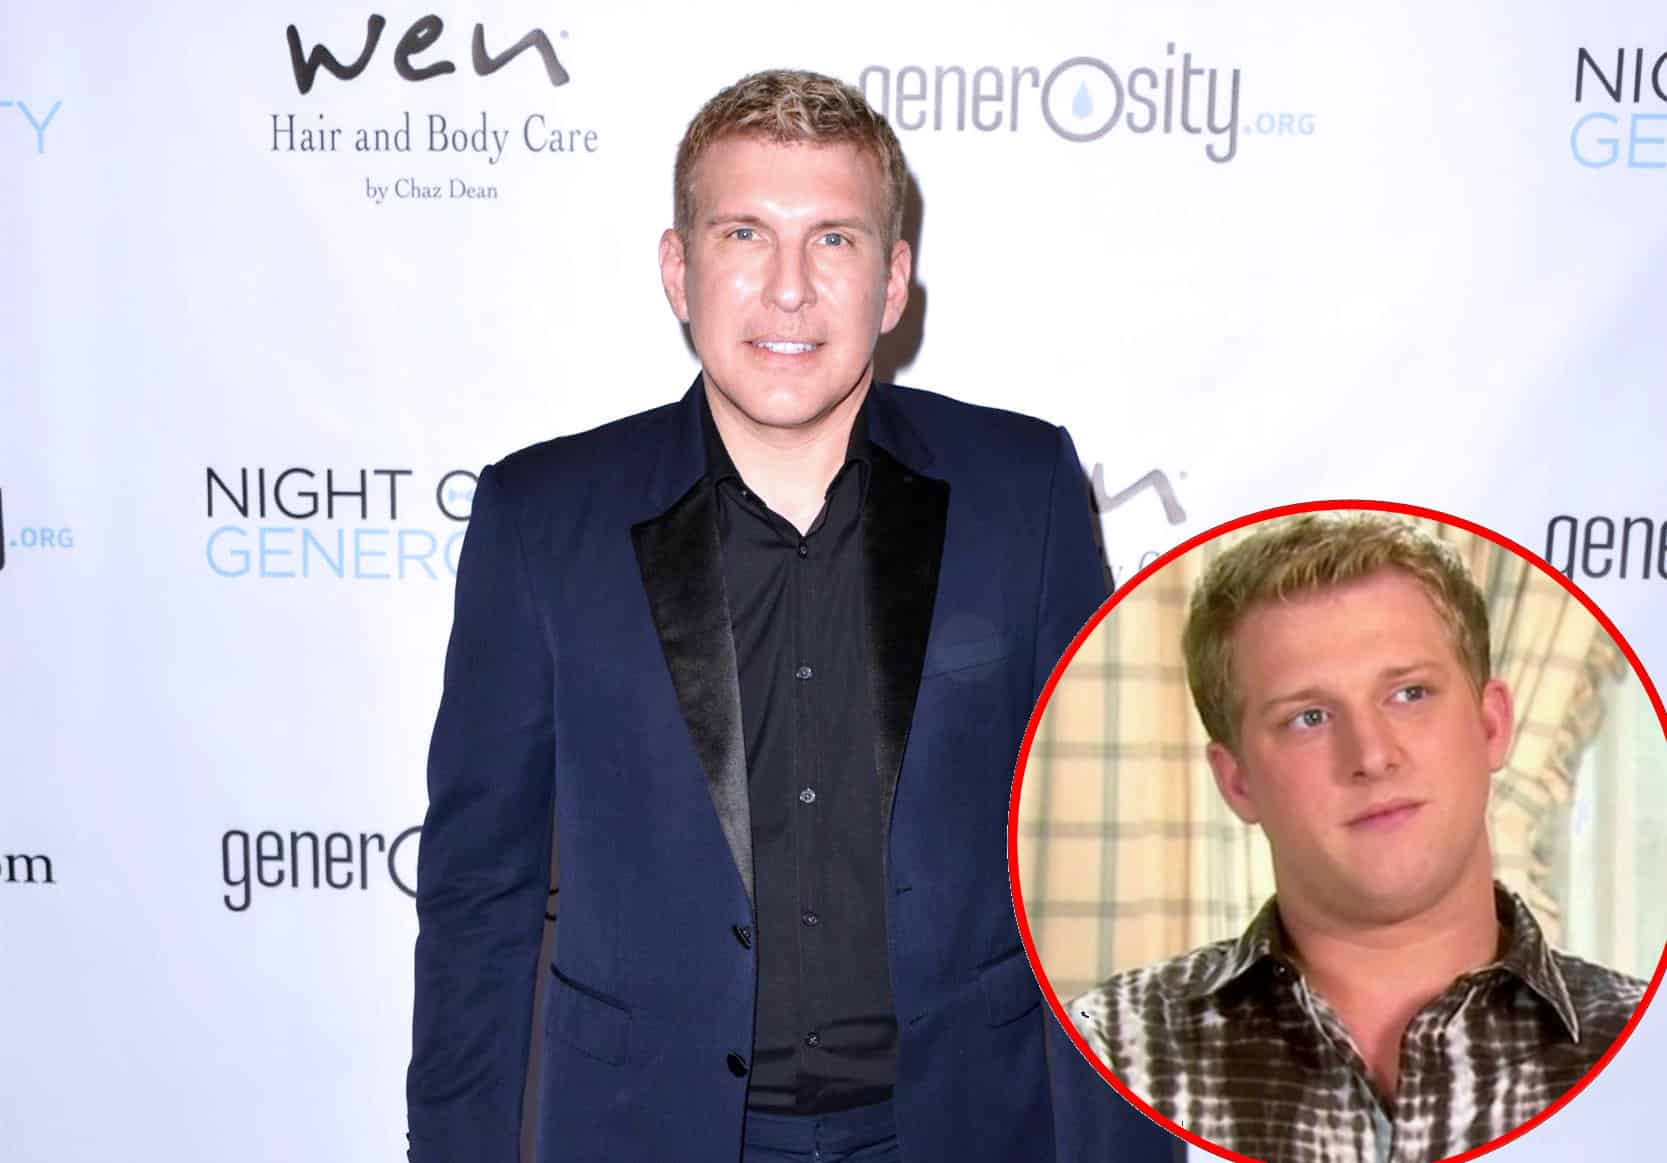 Chrisley Knows Best Star Todd Chrisley's Son Kyle Chrisley Hospitalized After Suicide Attempt, Reveals What Led to the Shocking Situation